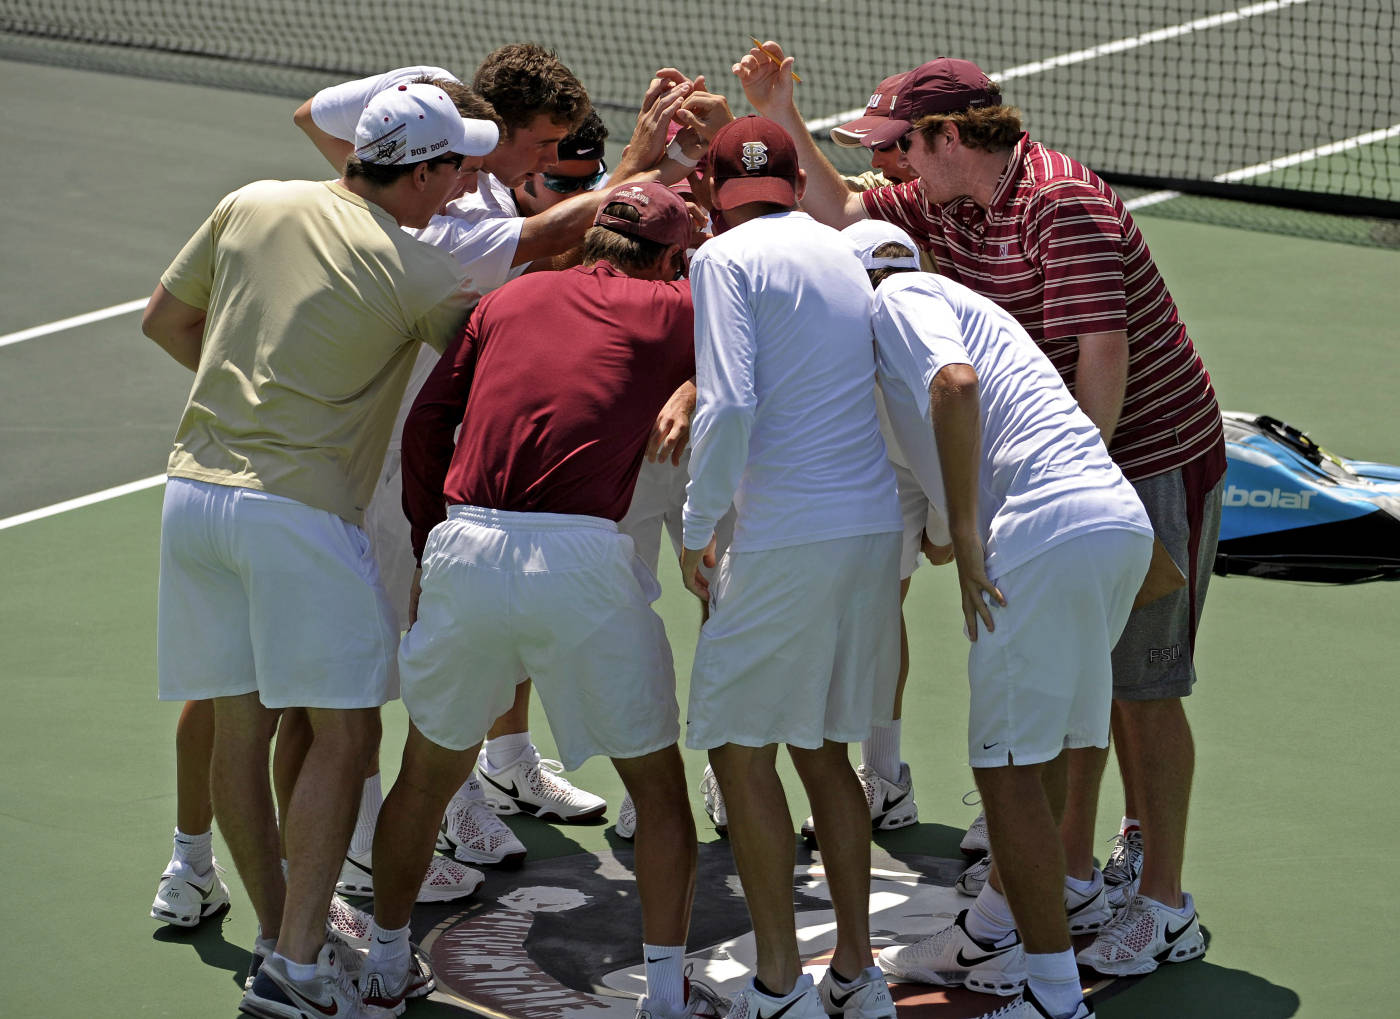 The men's tennis team cheers before the match.